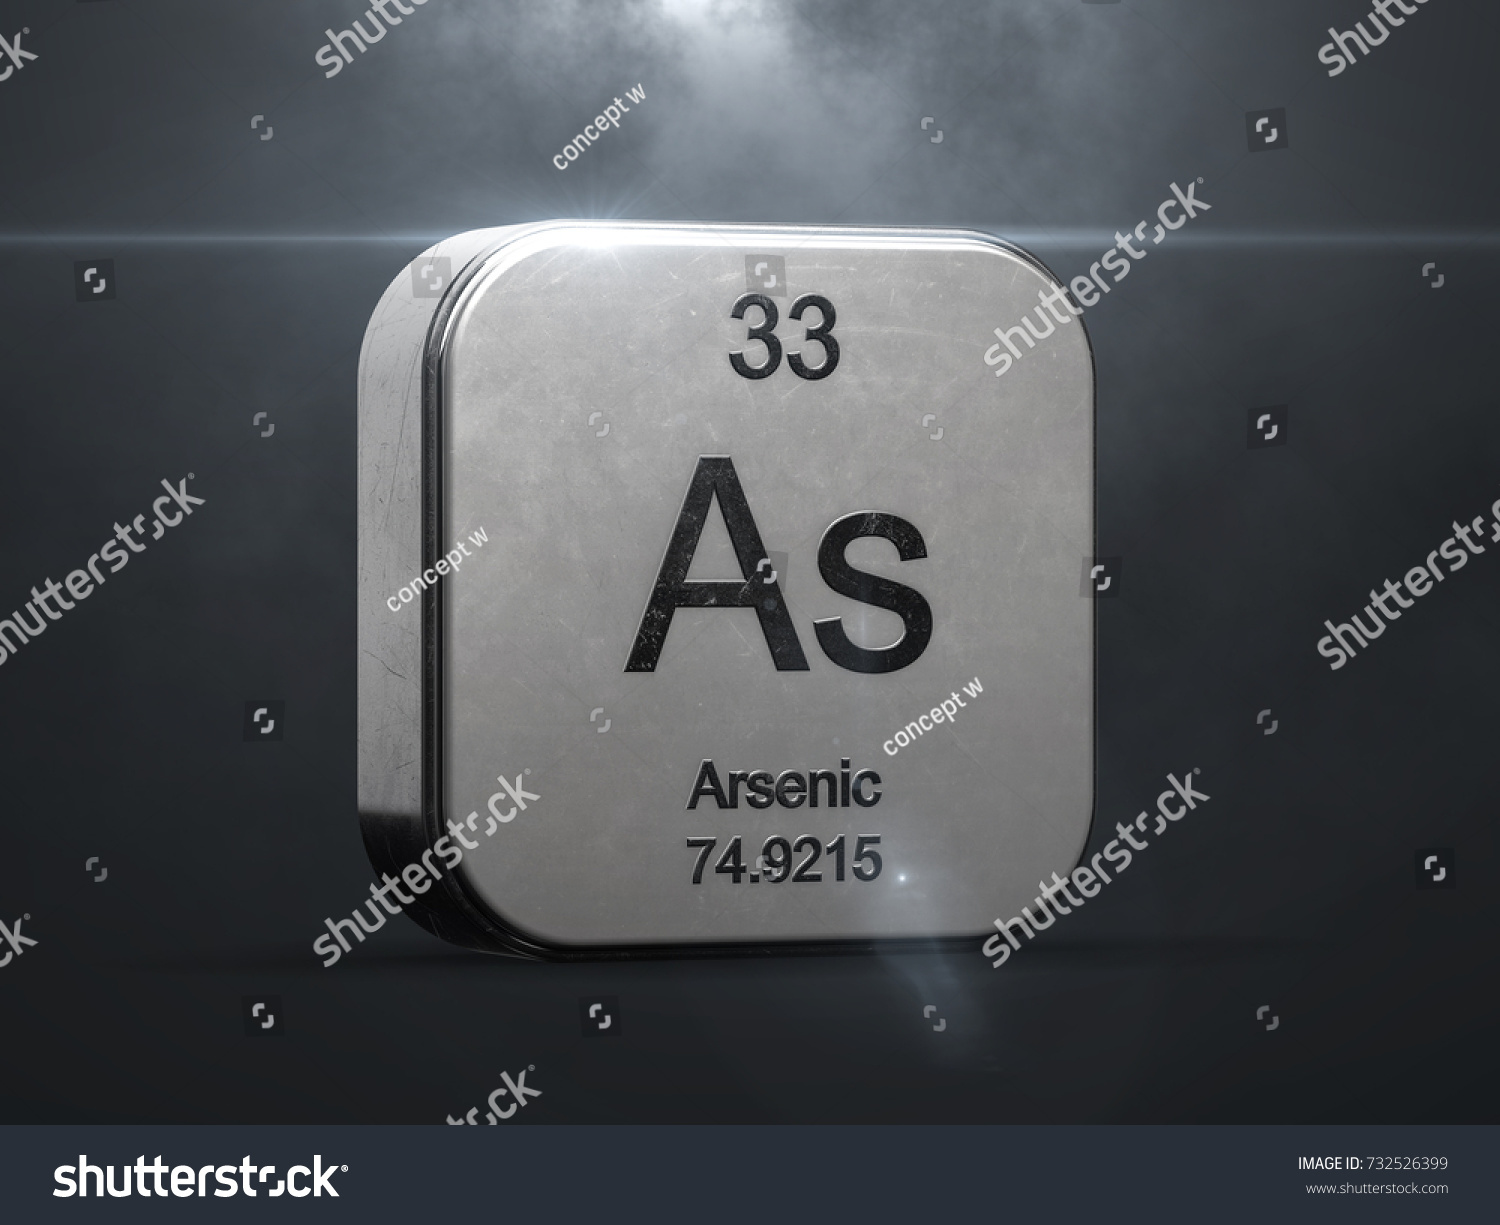 Arsenic element periodic table metallic icon stock illustration arsenic element from the periodic table metallic icon 3d rendered with nice lens flare 3d biocorpaavc Image collections